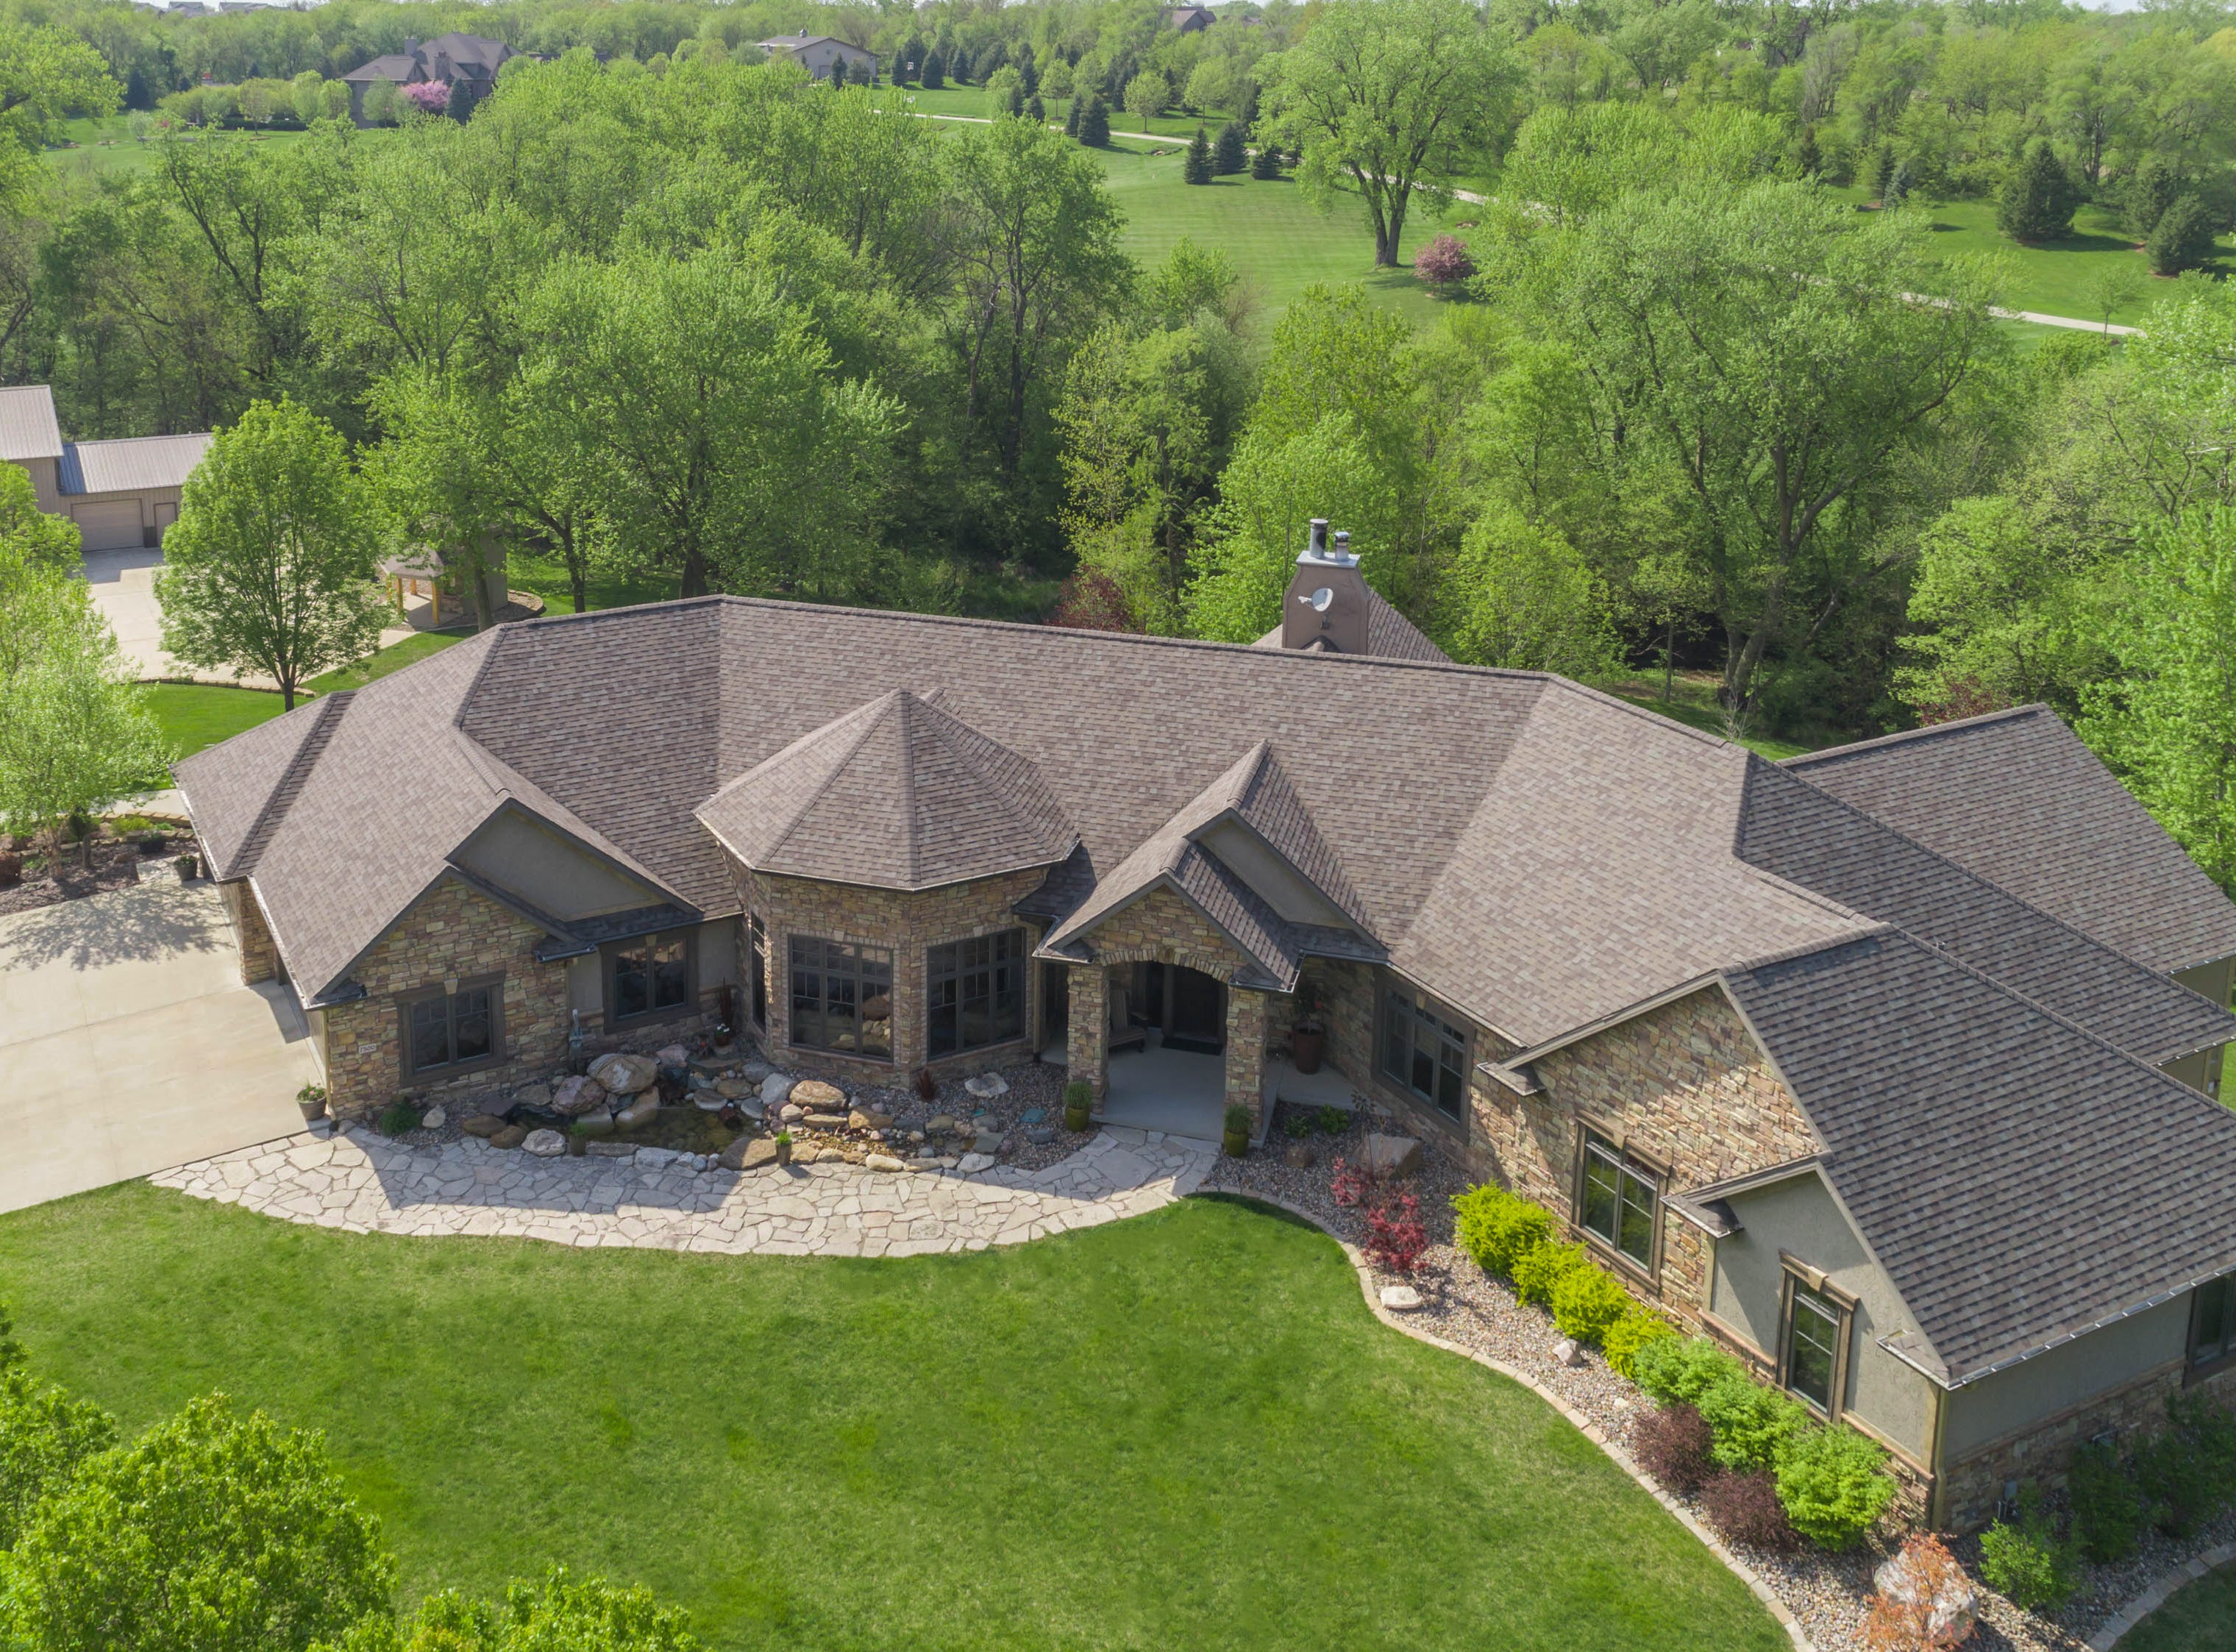 This home on Northwest 100th Street in Johnston sold for $1.3 million in 2018. It sits on three acres and has a 10-car garage, as well as a steel building with a wash bay, office and two additional bays for RV and boat storage.